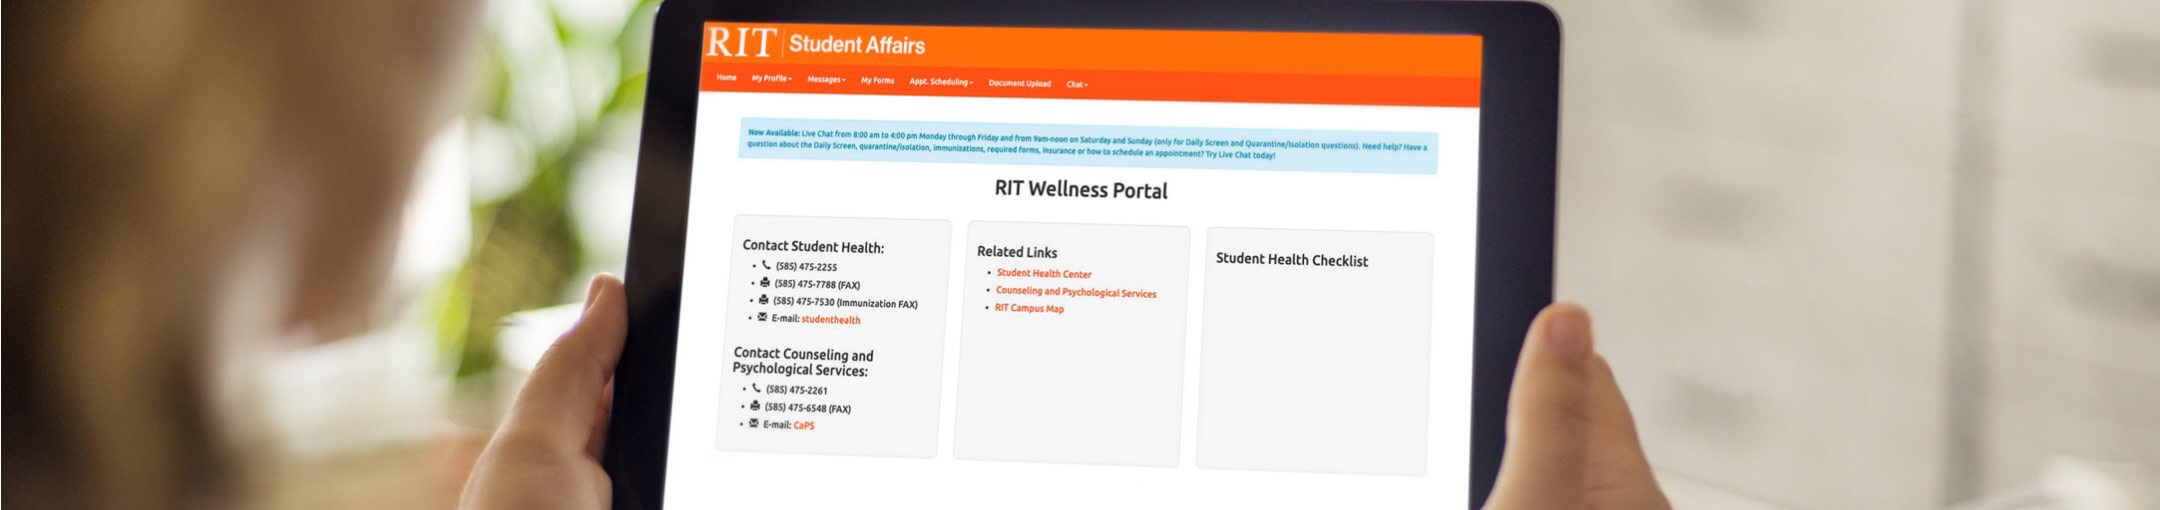 A person holding a tablet with the RIT Wellness Portal on the screen.